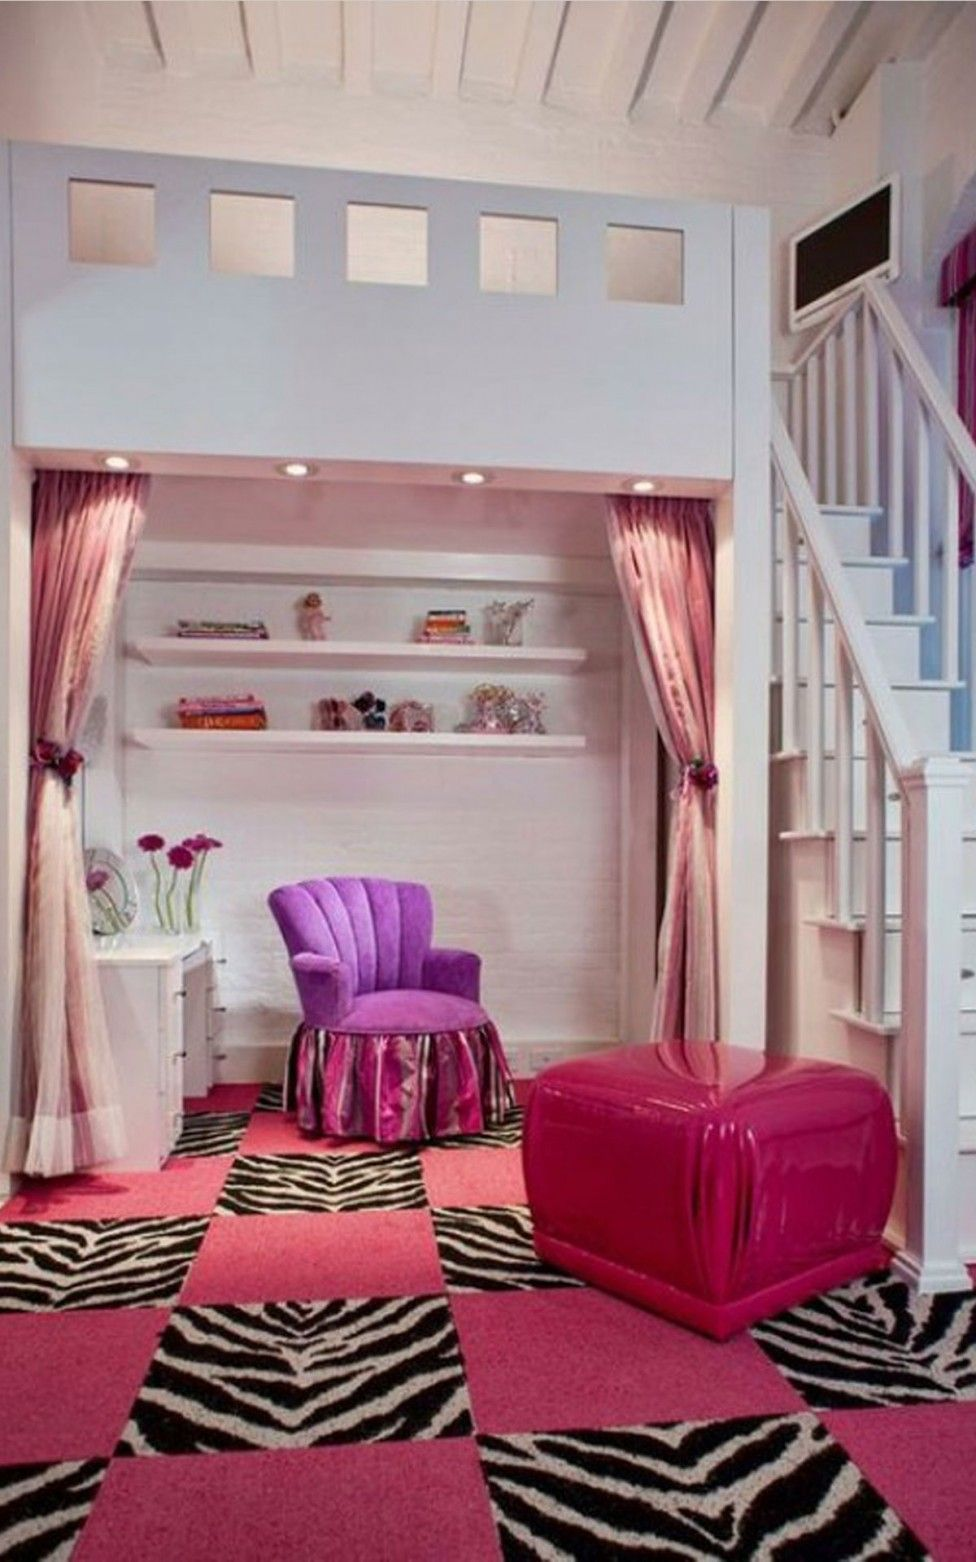 Small room ideas for girls with cute color bedroom 22 for Cute bedroom designs for small rooms